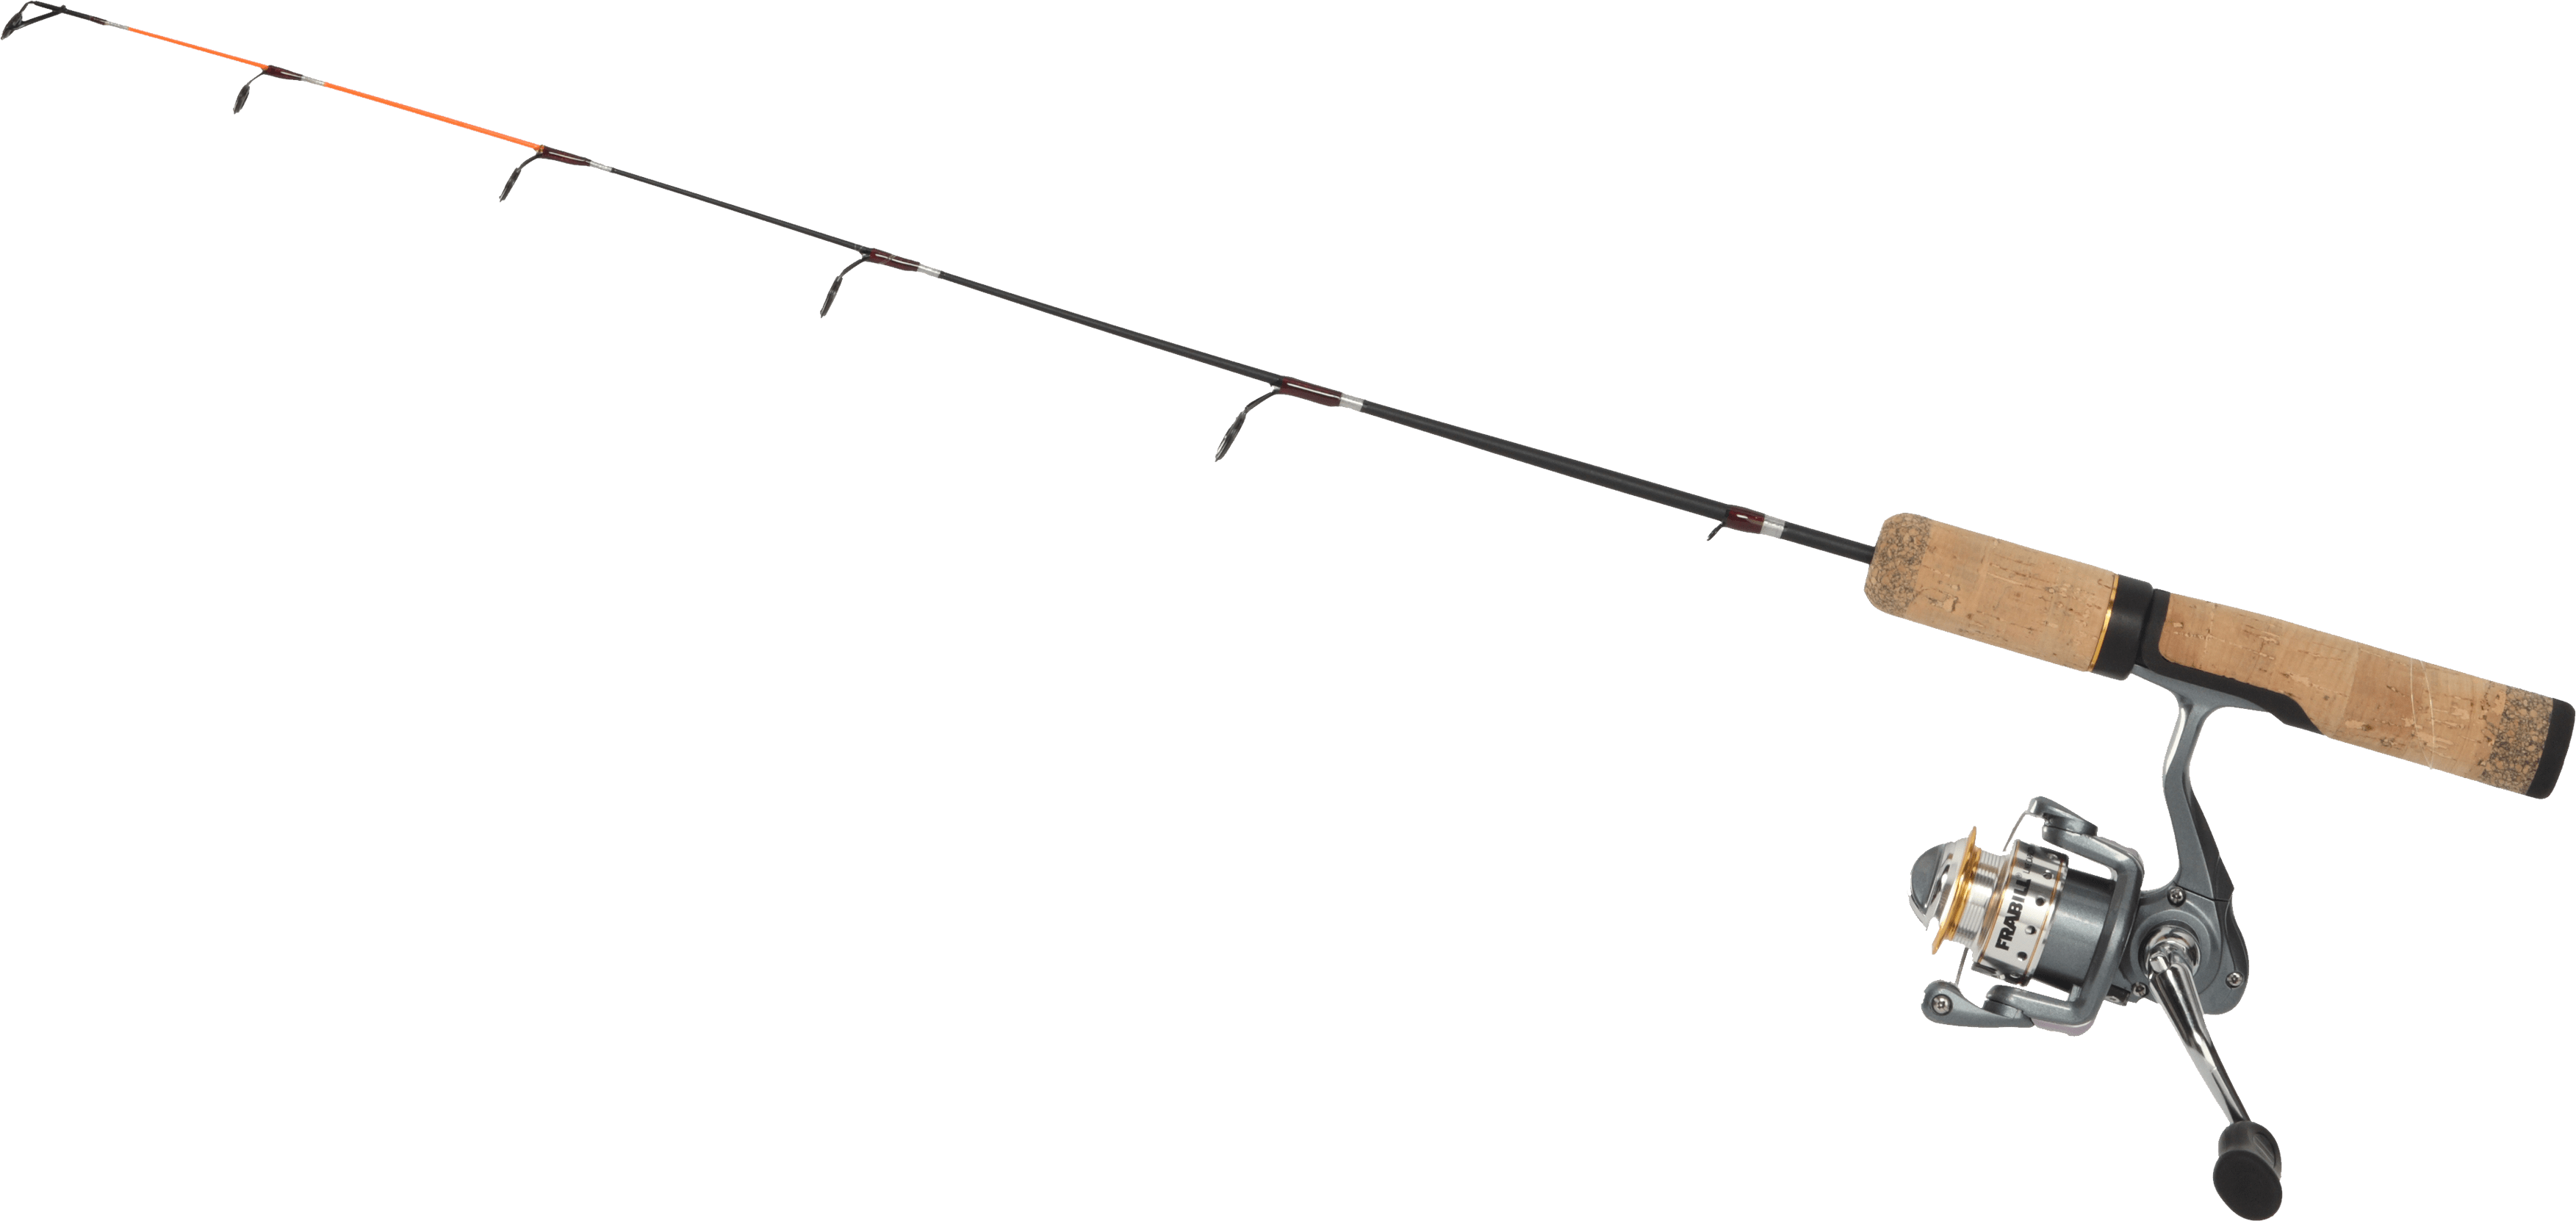 Fishing pole clipart png. Transparent stickpng